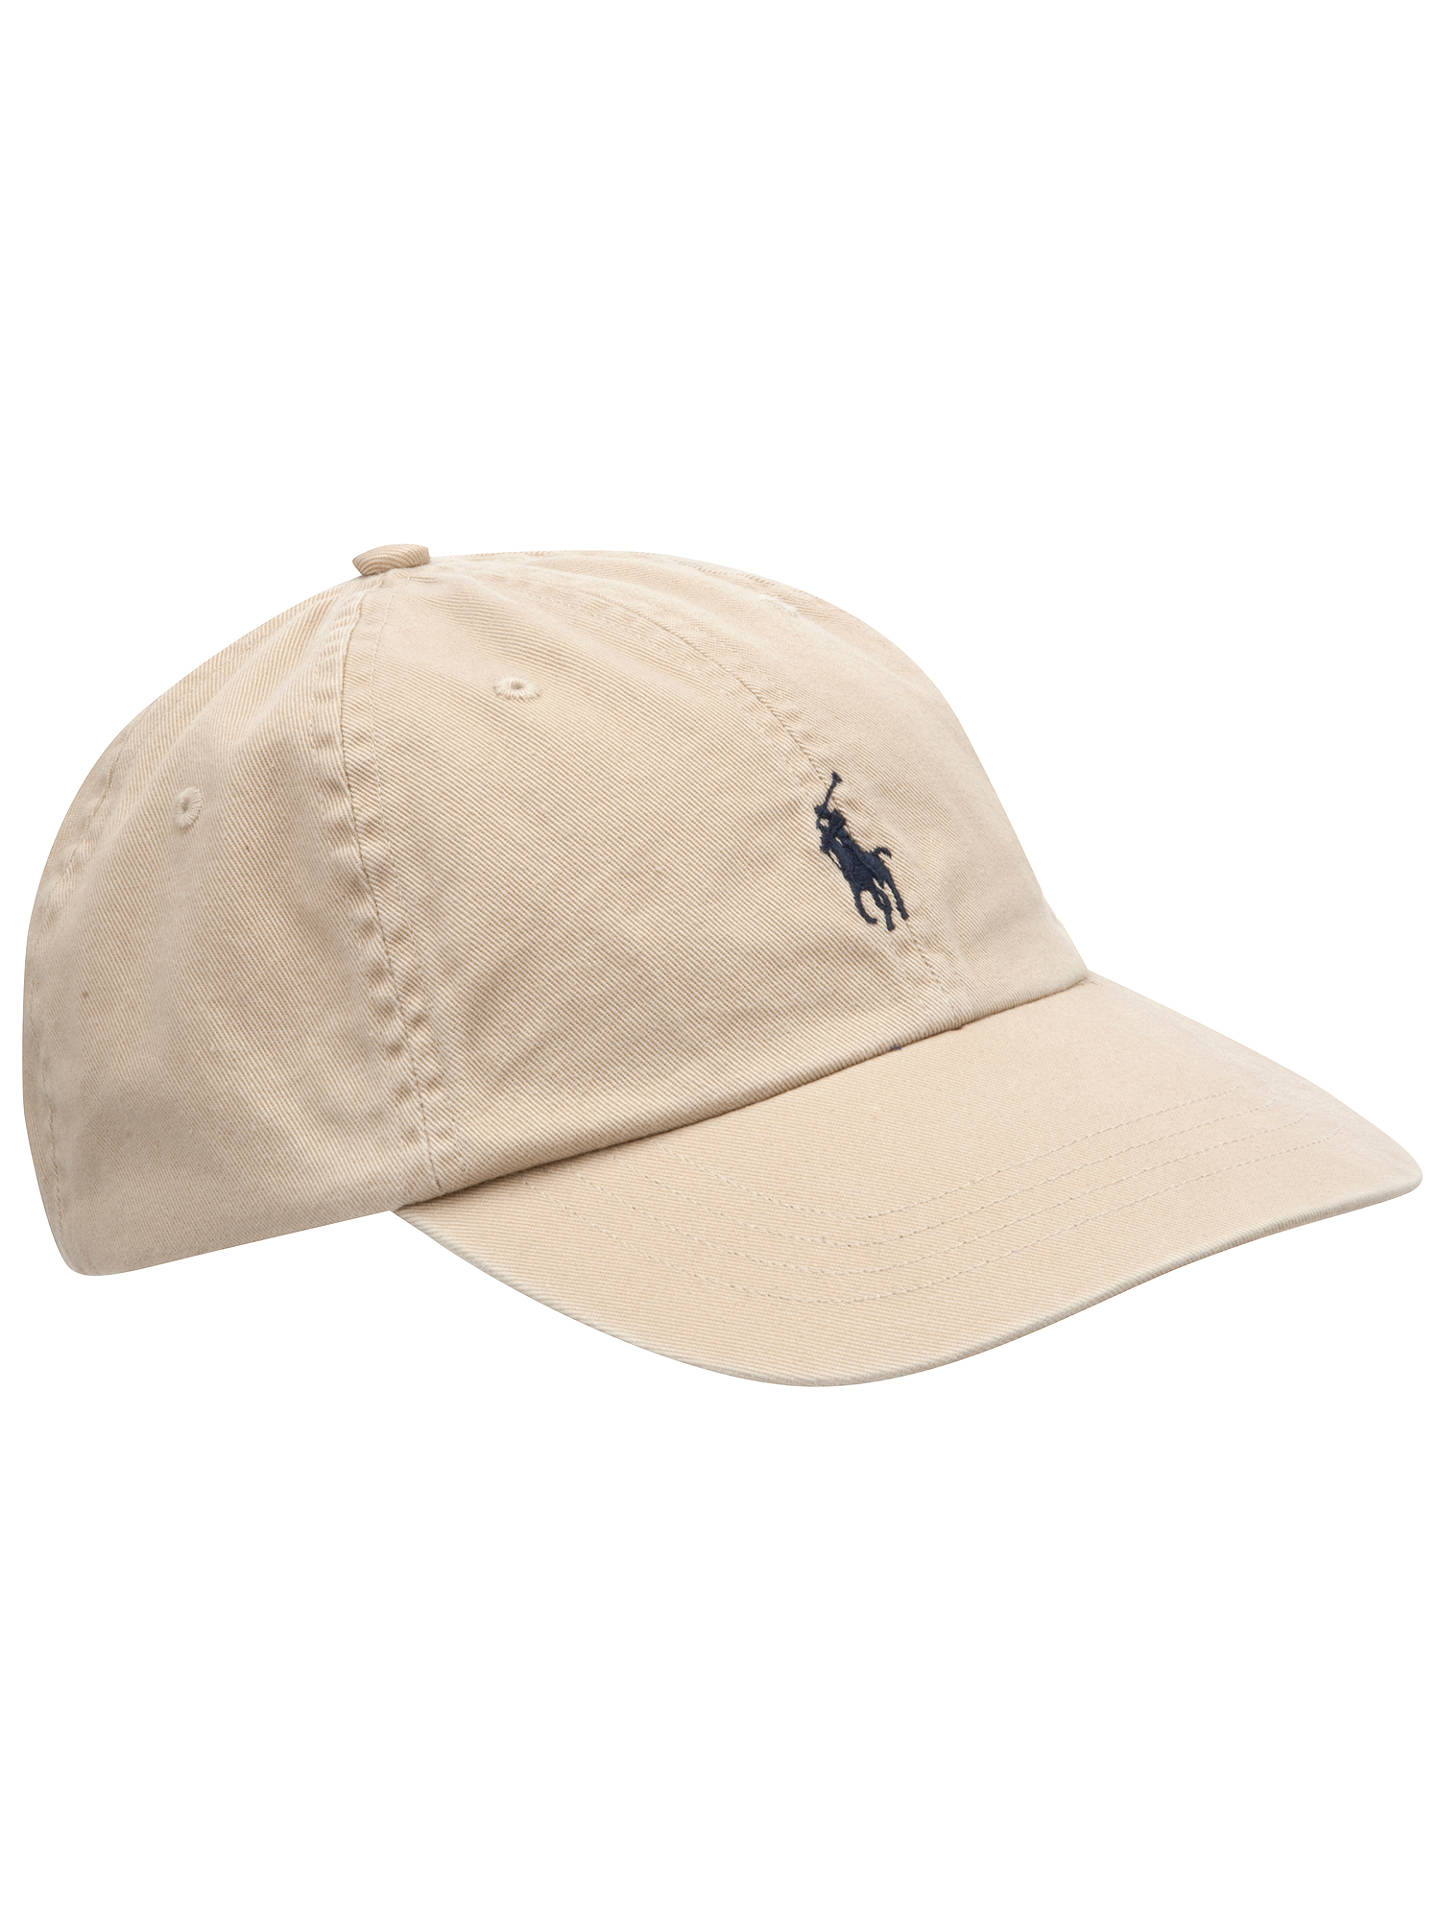 25d27fb2 Buy Polo Ralph Lauren Signature Pony Baseball Cap, One Size, Stone Online  at johnlewis ...